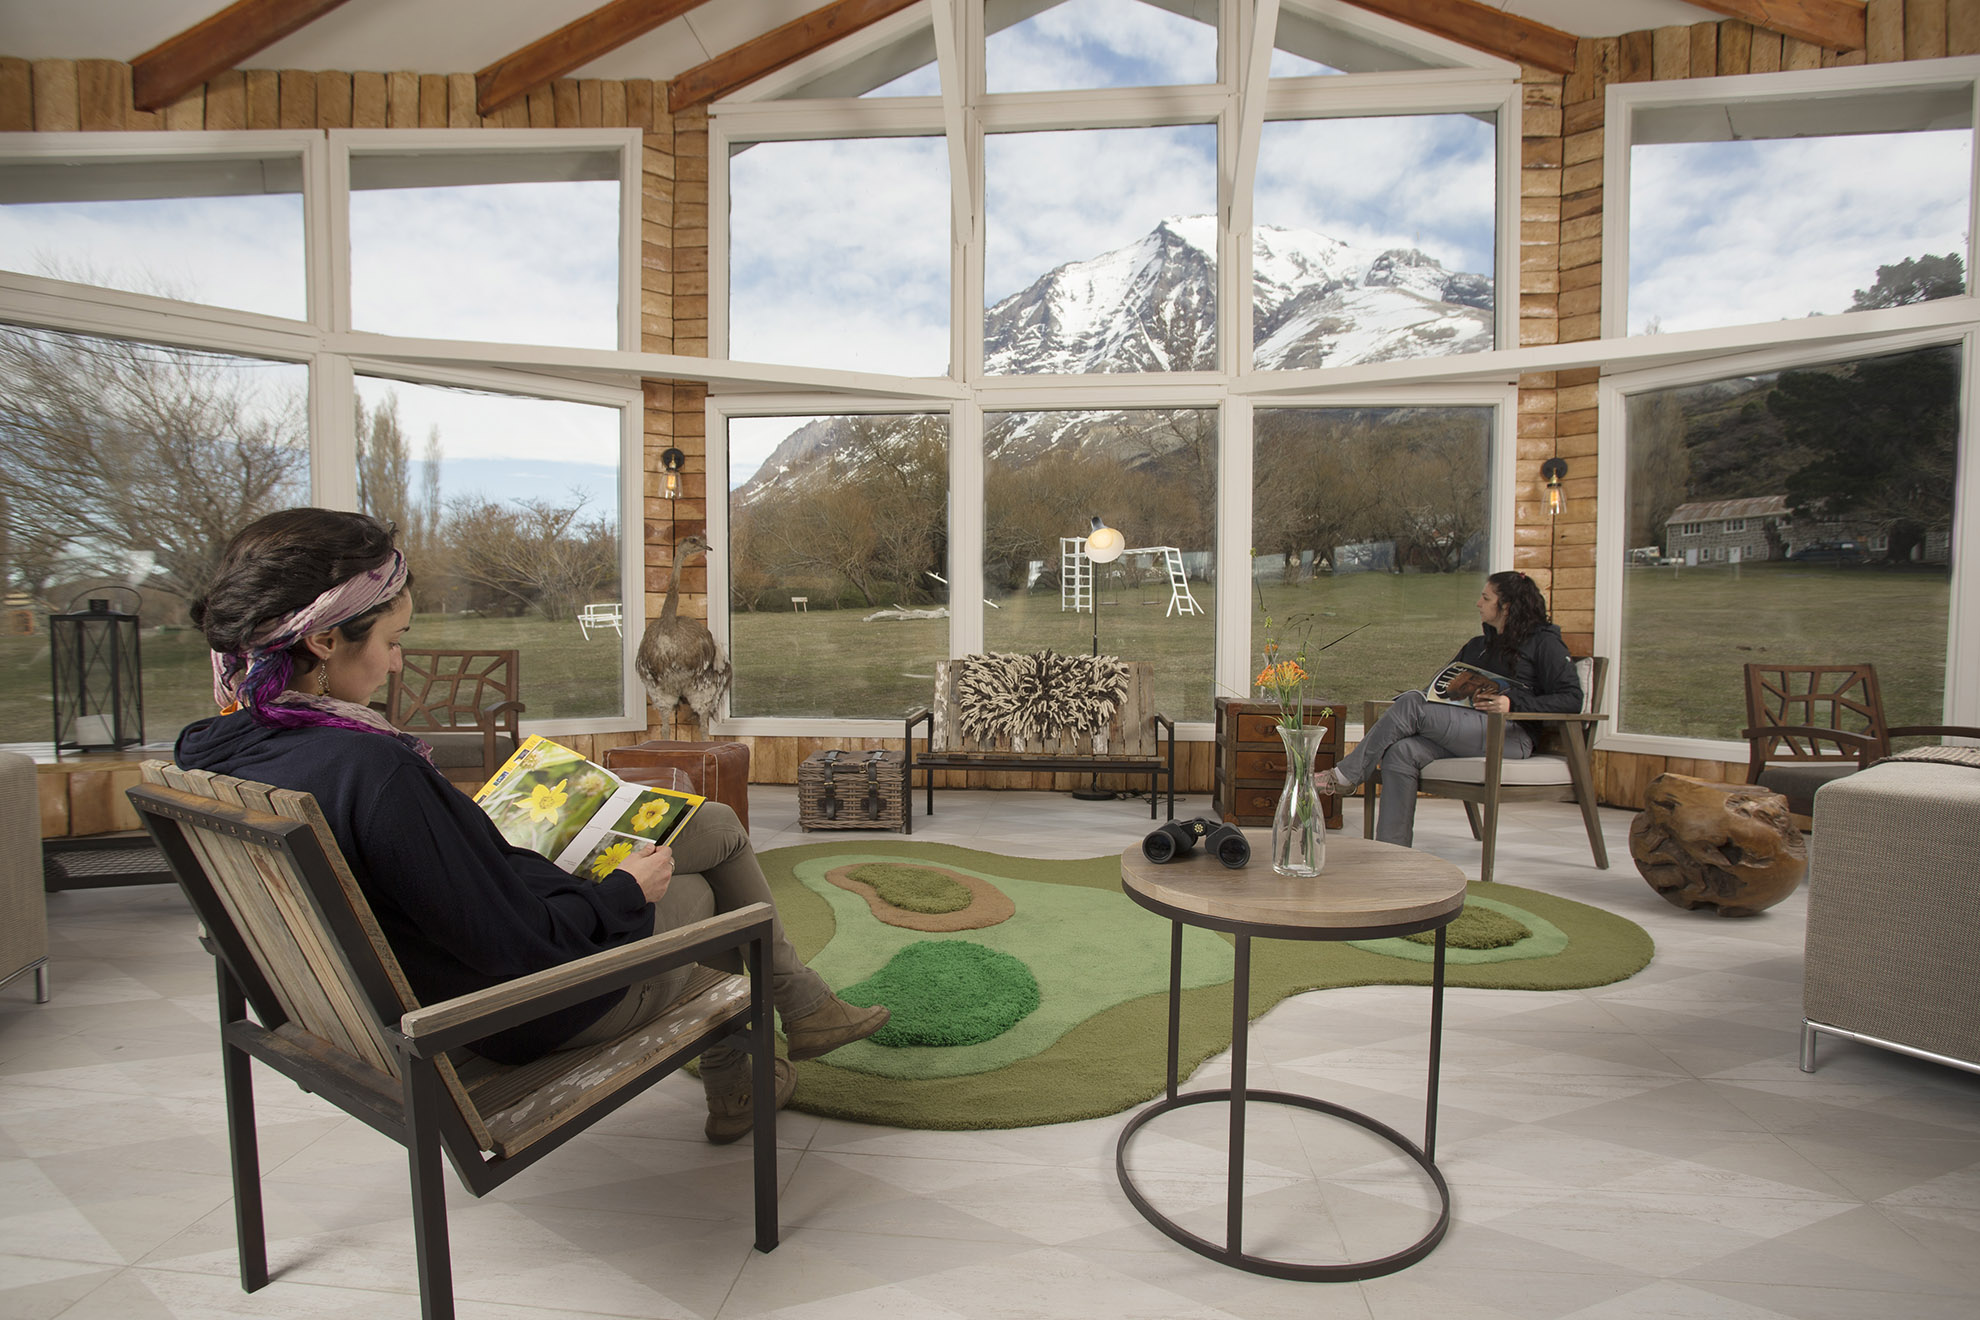 Common Area at Hotel Las Torres, Patagonia, Chile